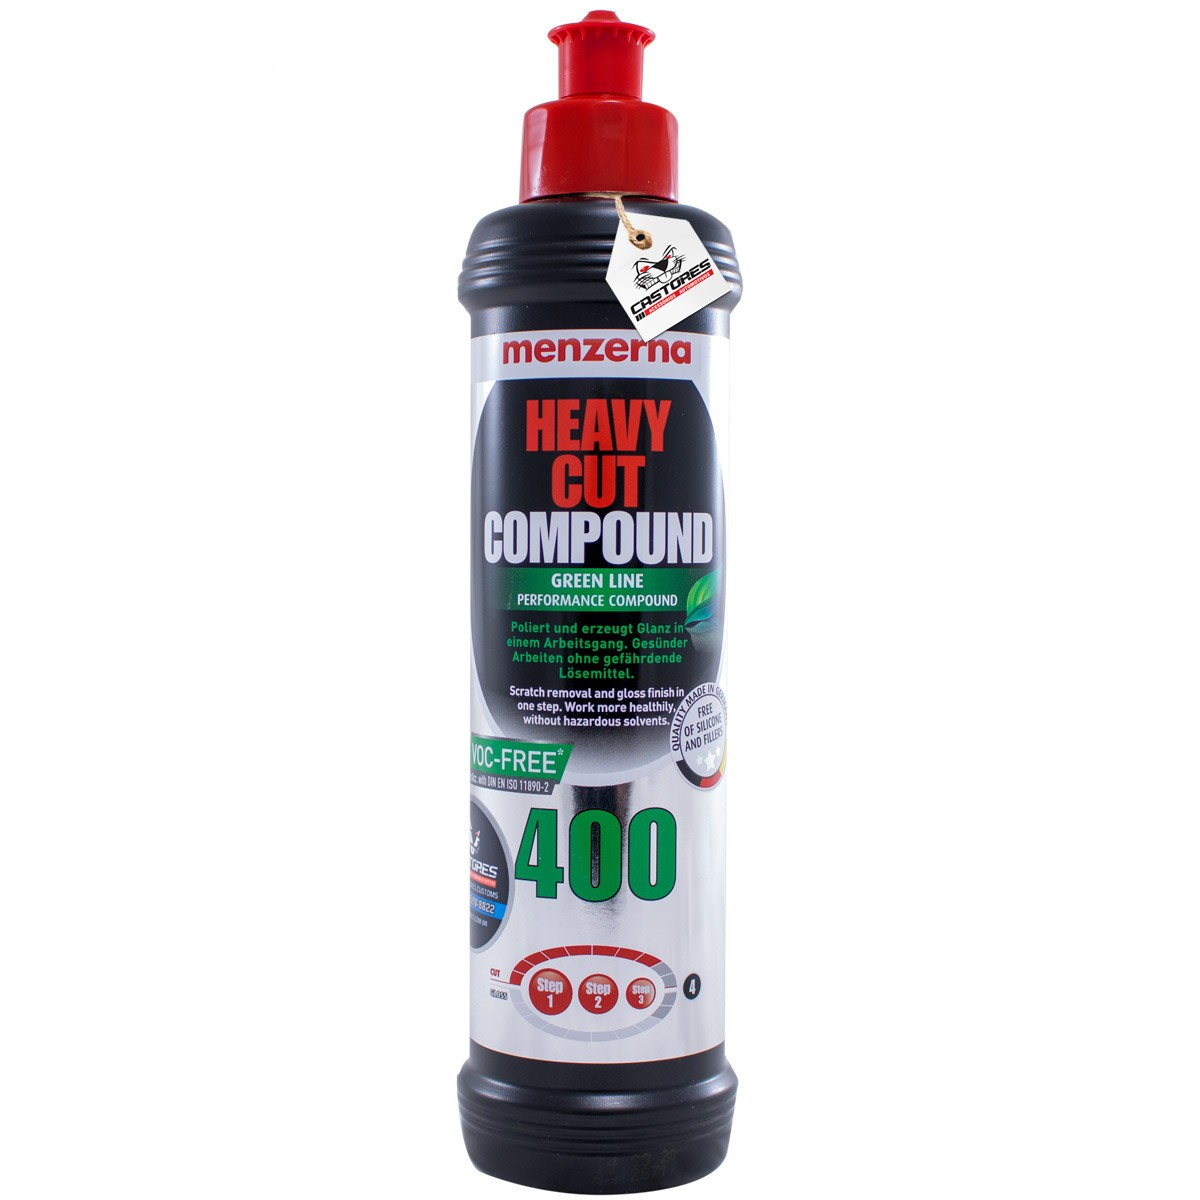 HEAVY CUT 400 GREEN LINE MENZERNA  - 250ML